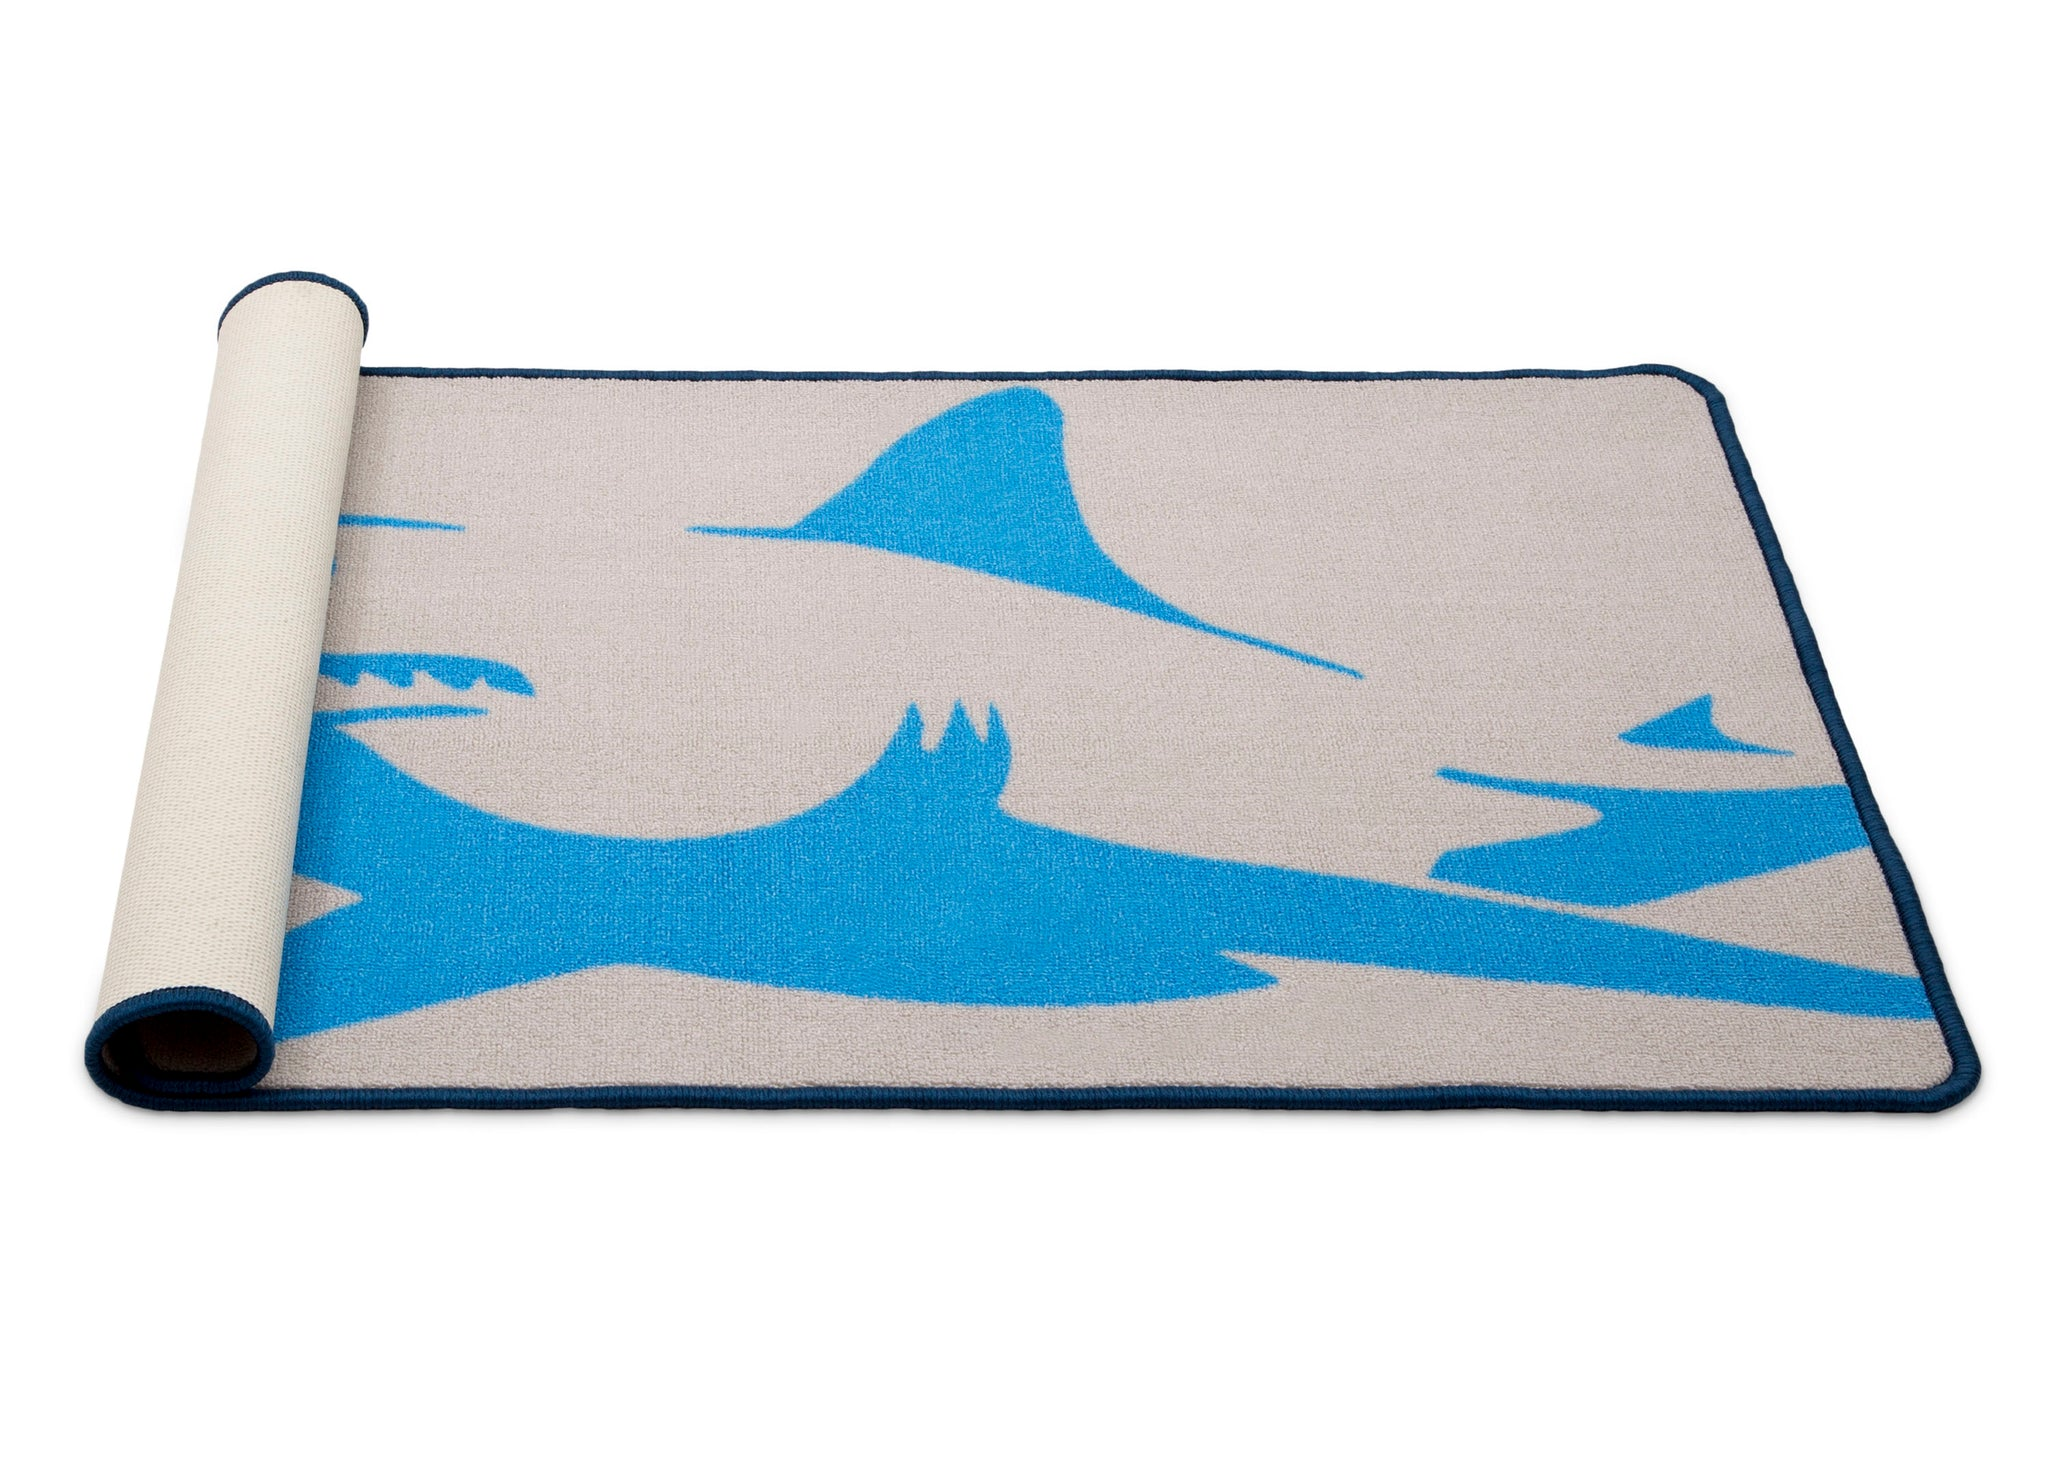 Delta Children Shark (3208) Non-Slip Area Rug for Boys, Silo View